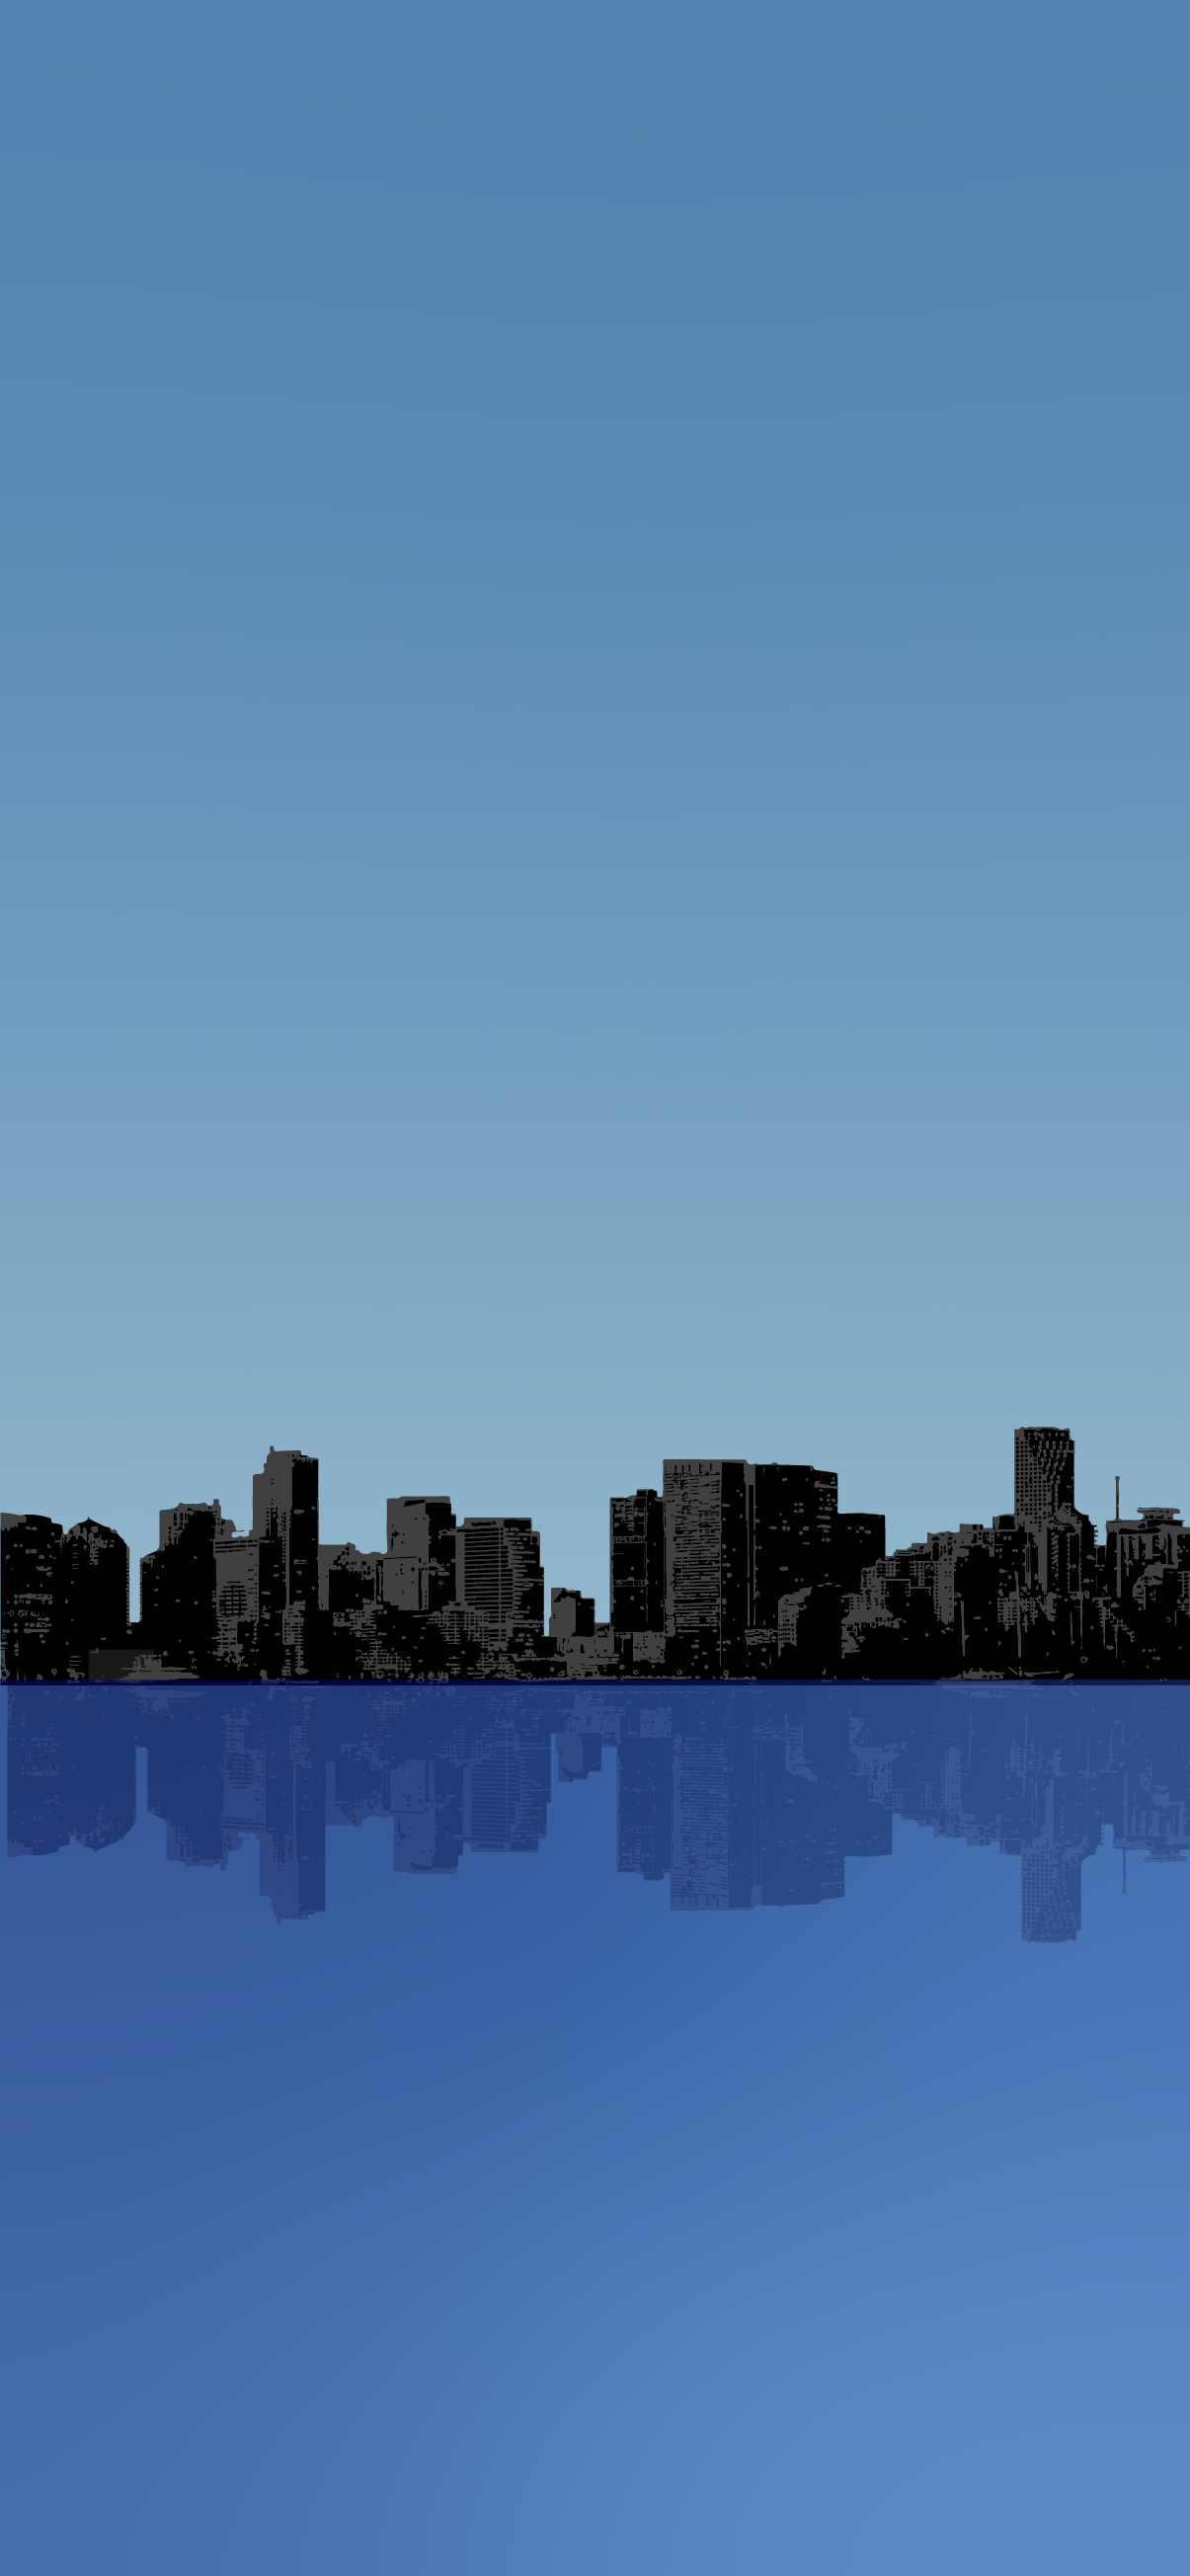 blue-city-silhouette-background-wallpaper-hd-4k